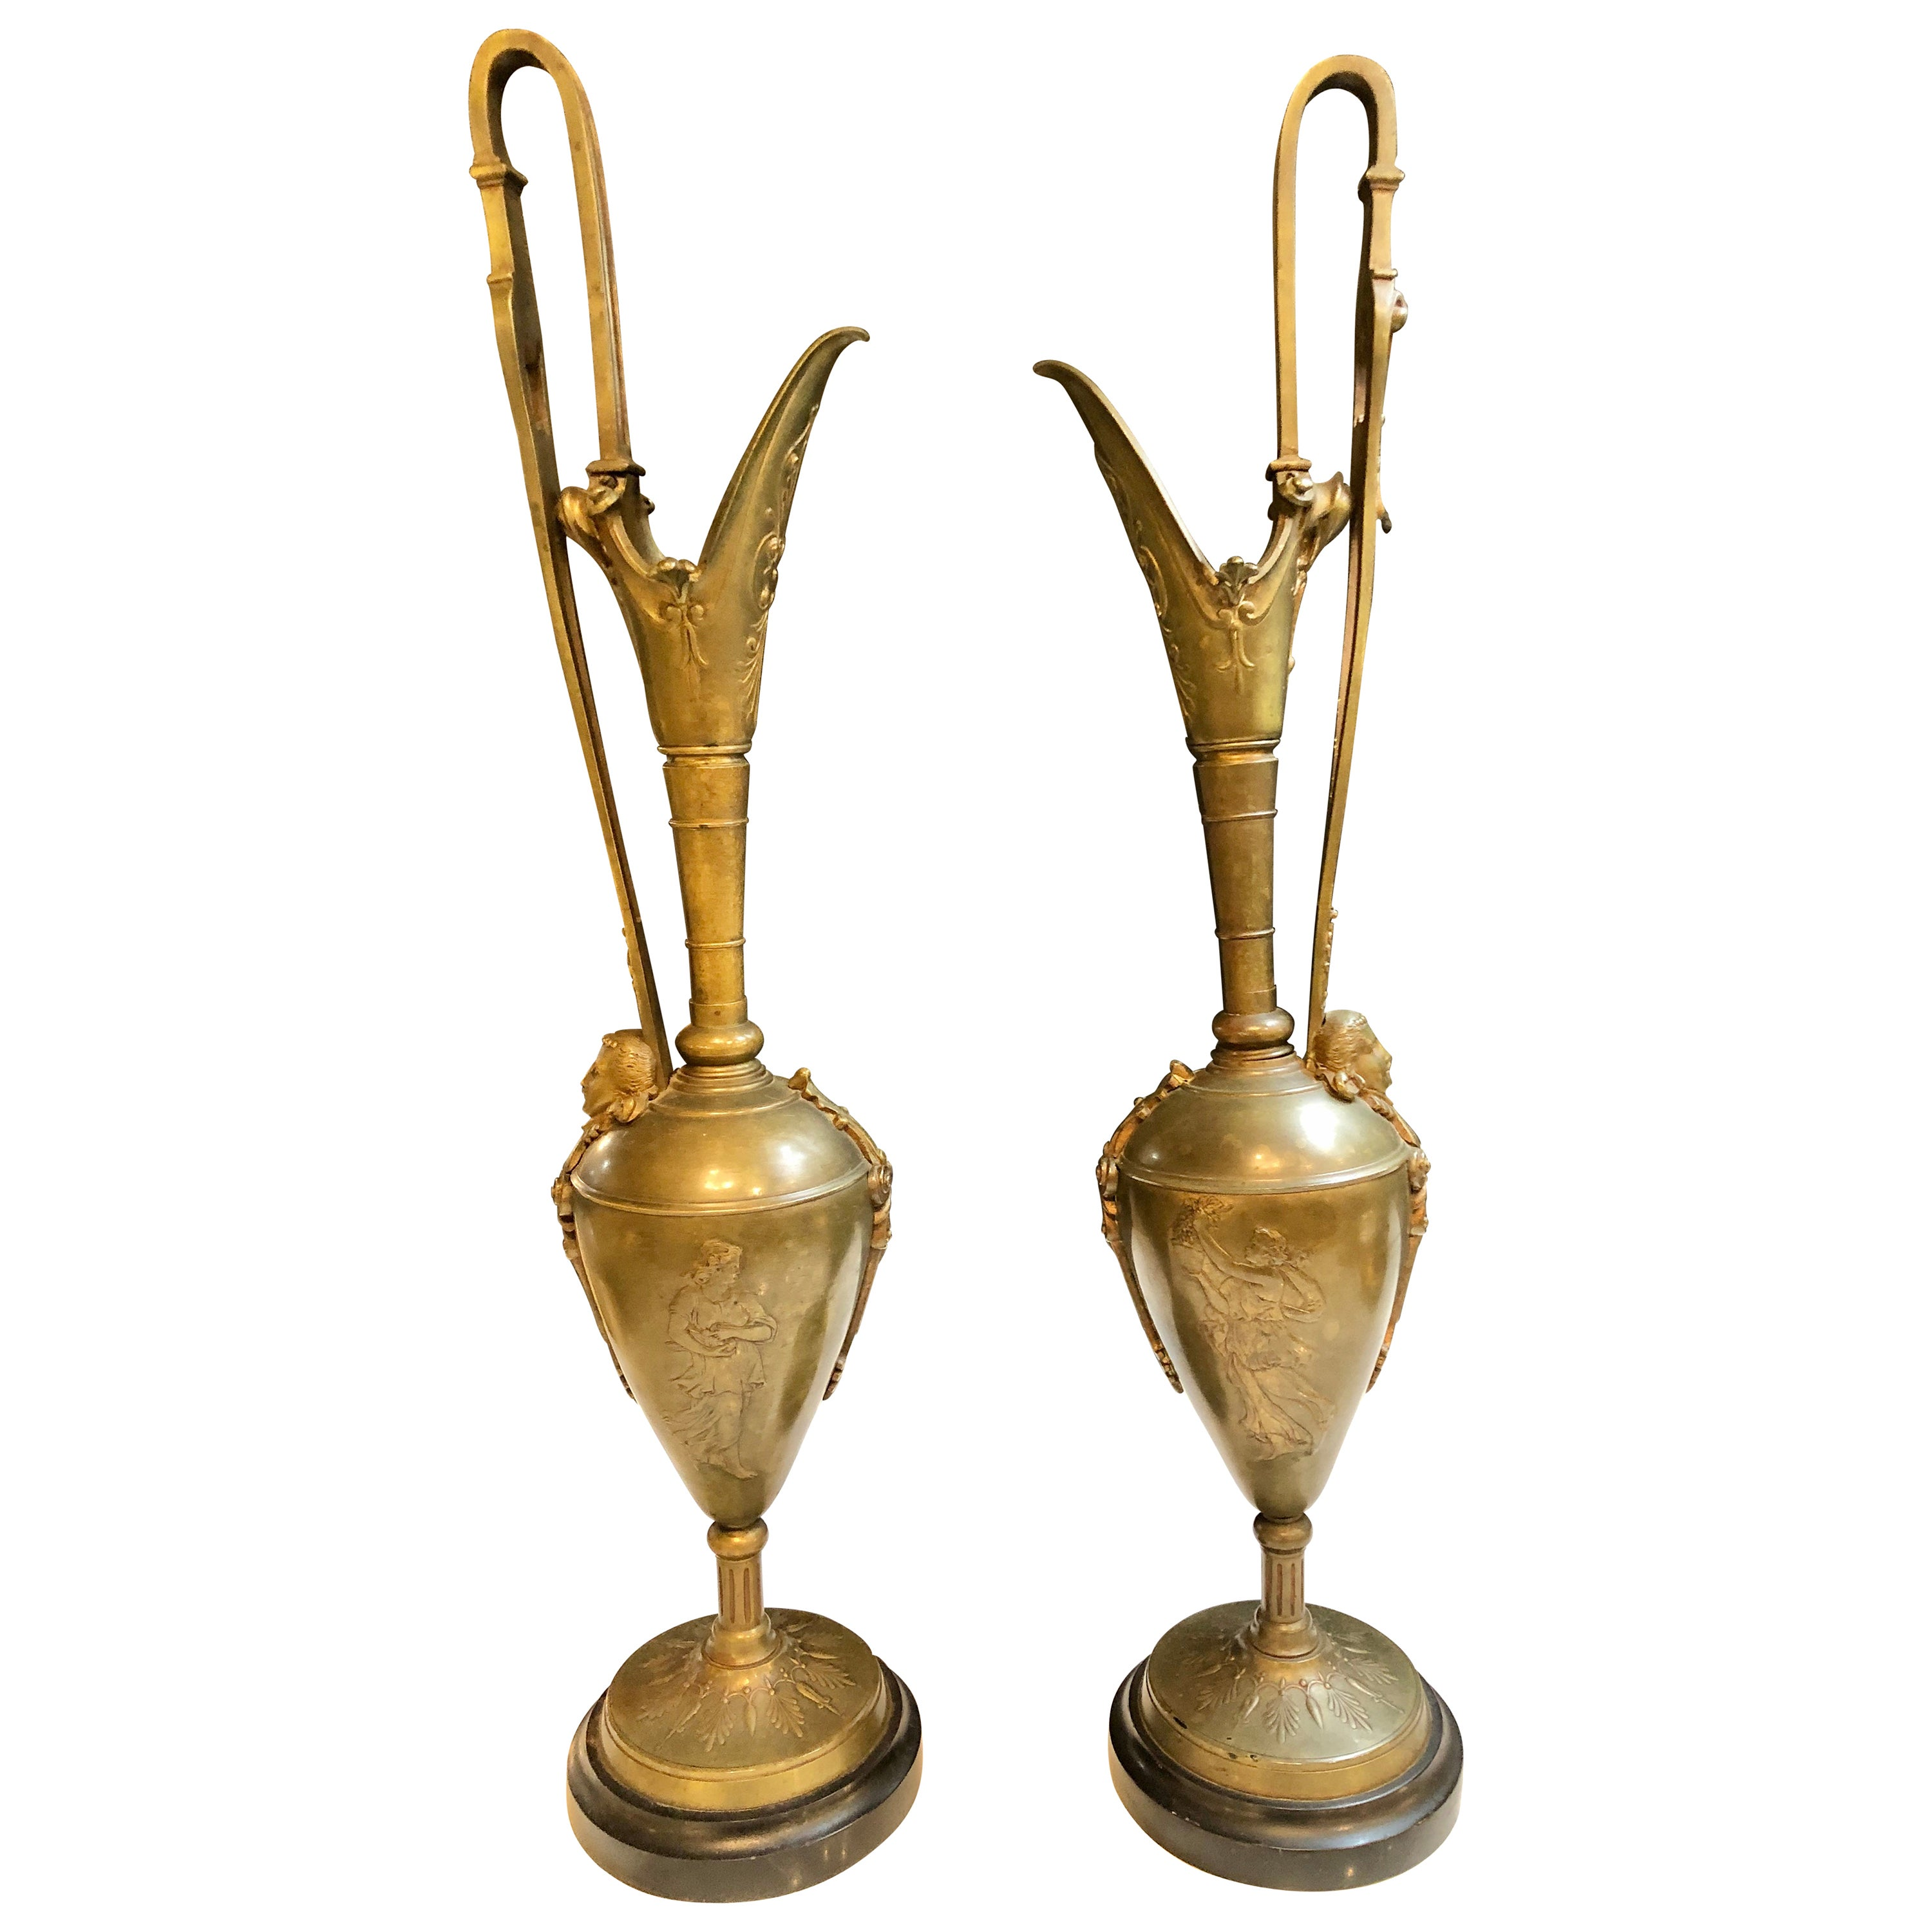 Pair of Classical Figural Bronze Neoclassical Ewers, 19th Century